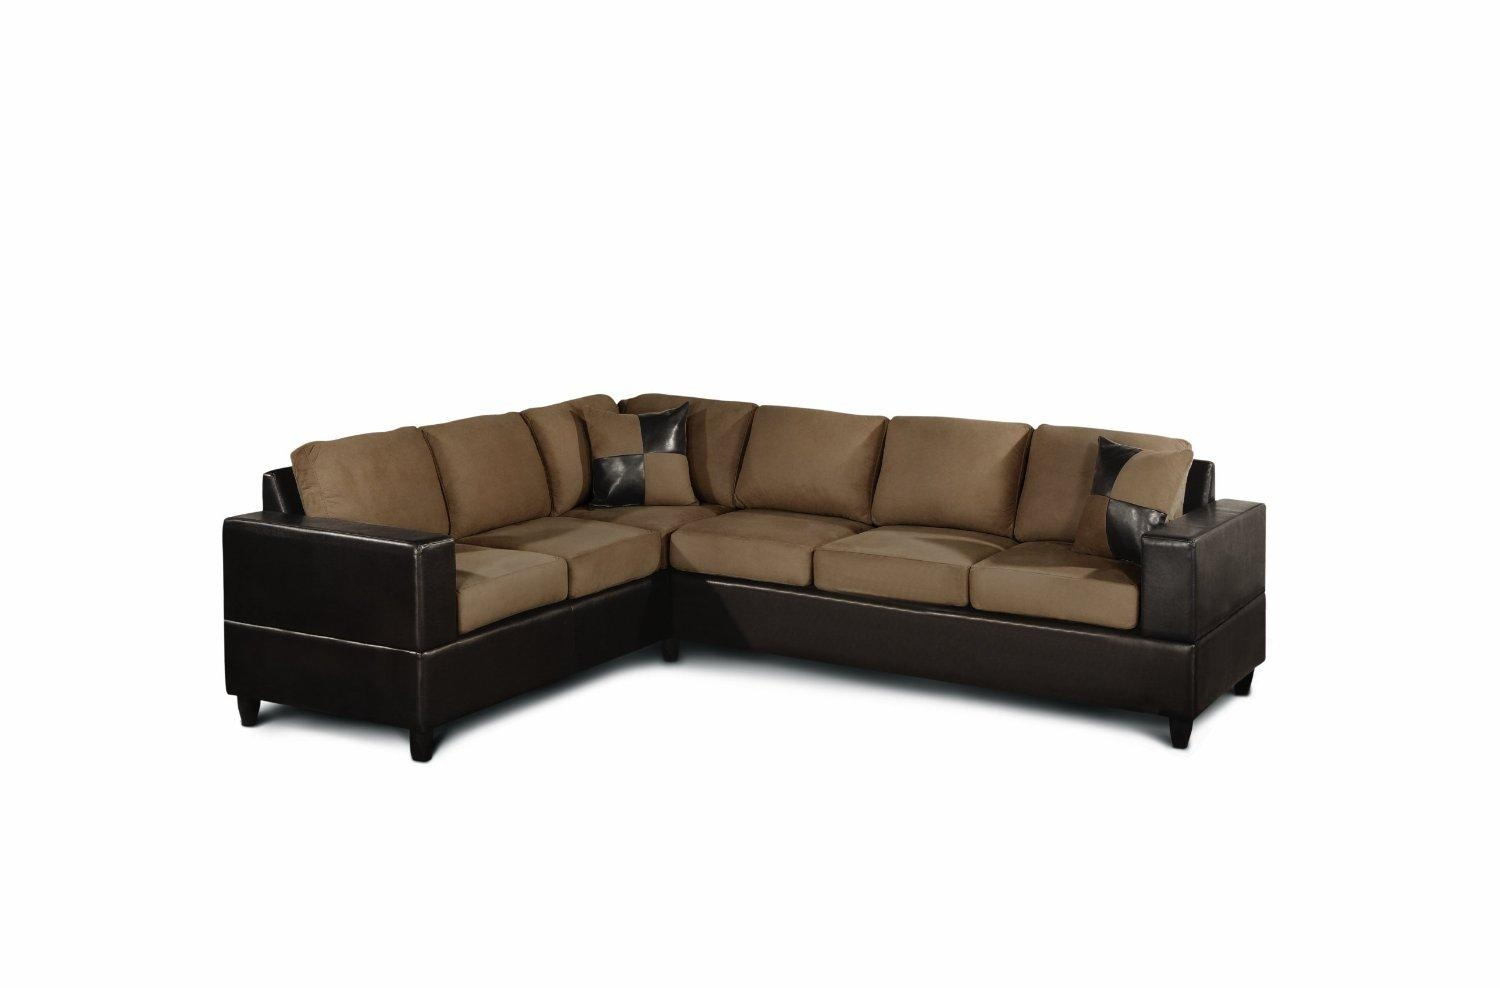 L Shaped Sofa For Small Spaces Intended For Small L Shaped Sofas (View 7 of 20)